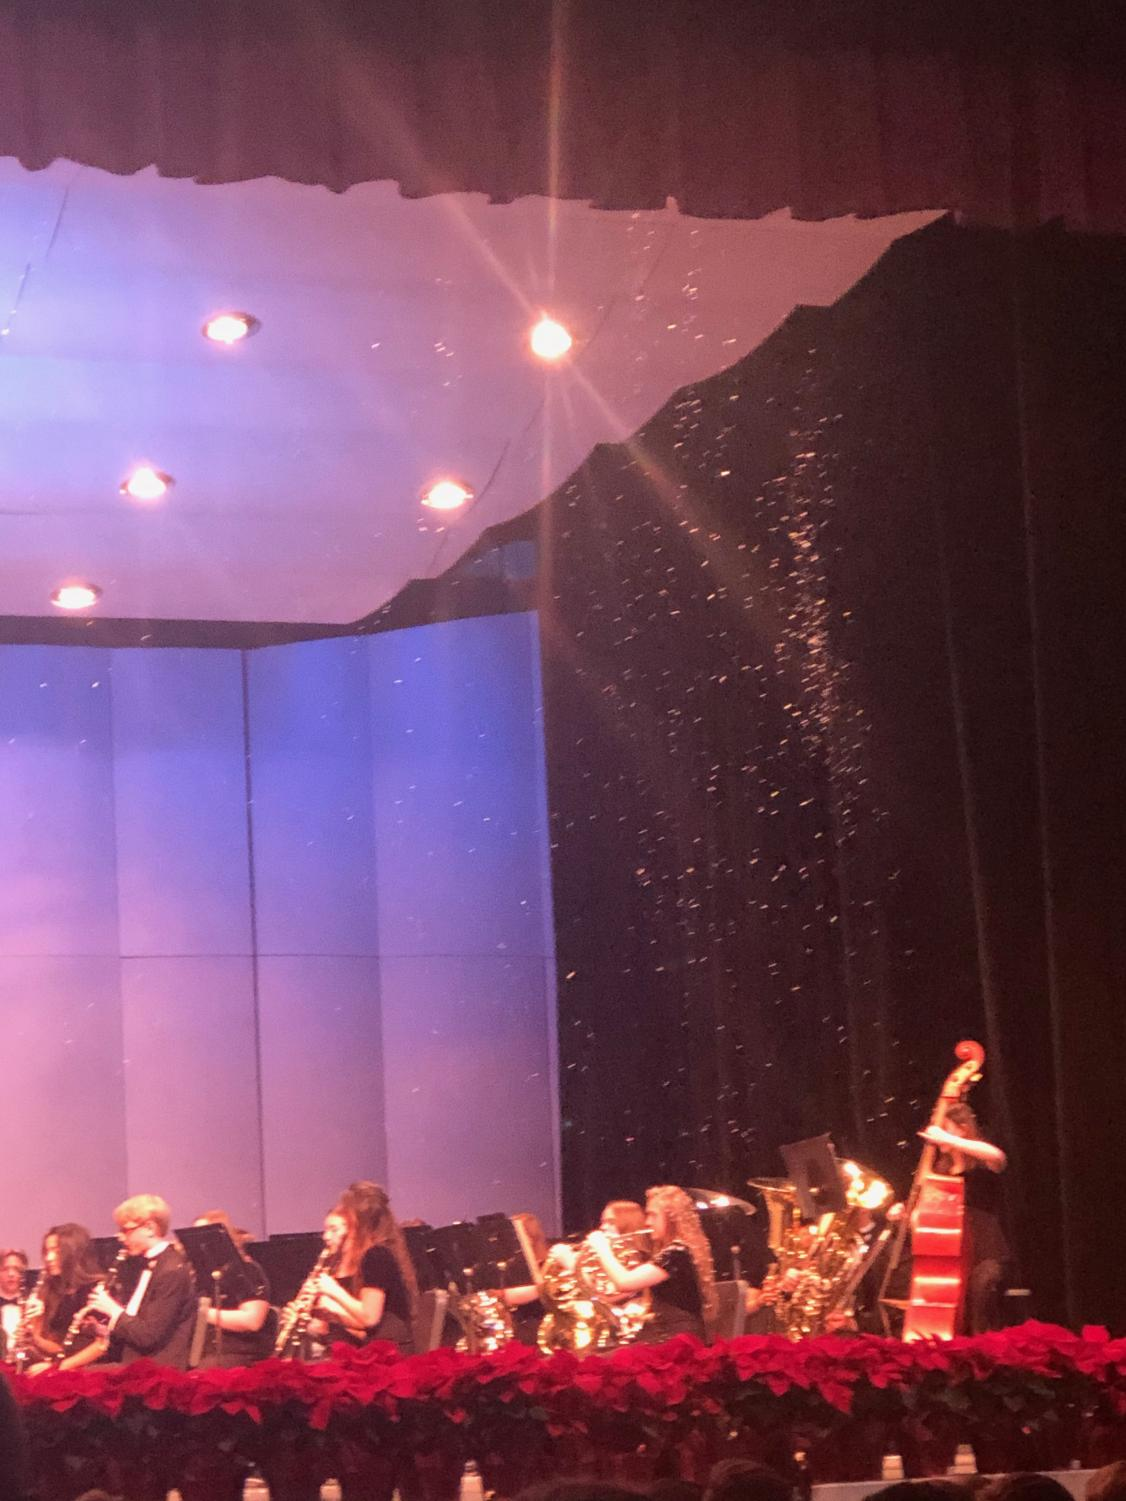 Wind Ensemble played a moving rendition of the traditional Winter song